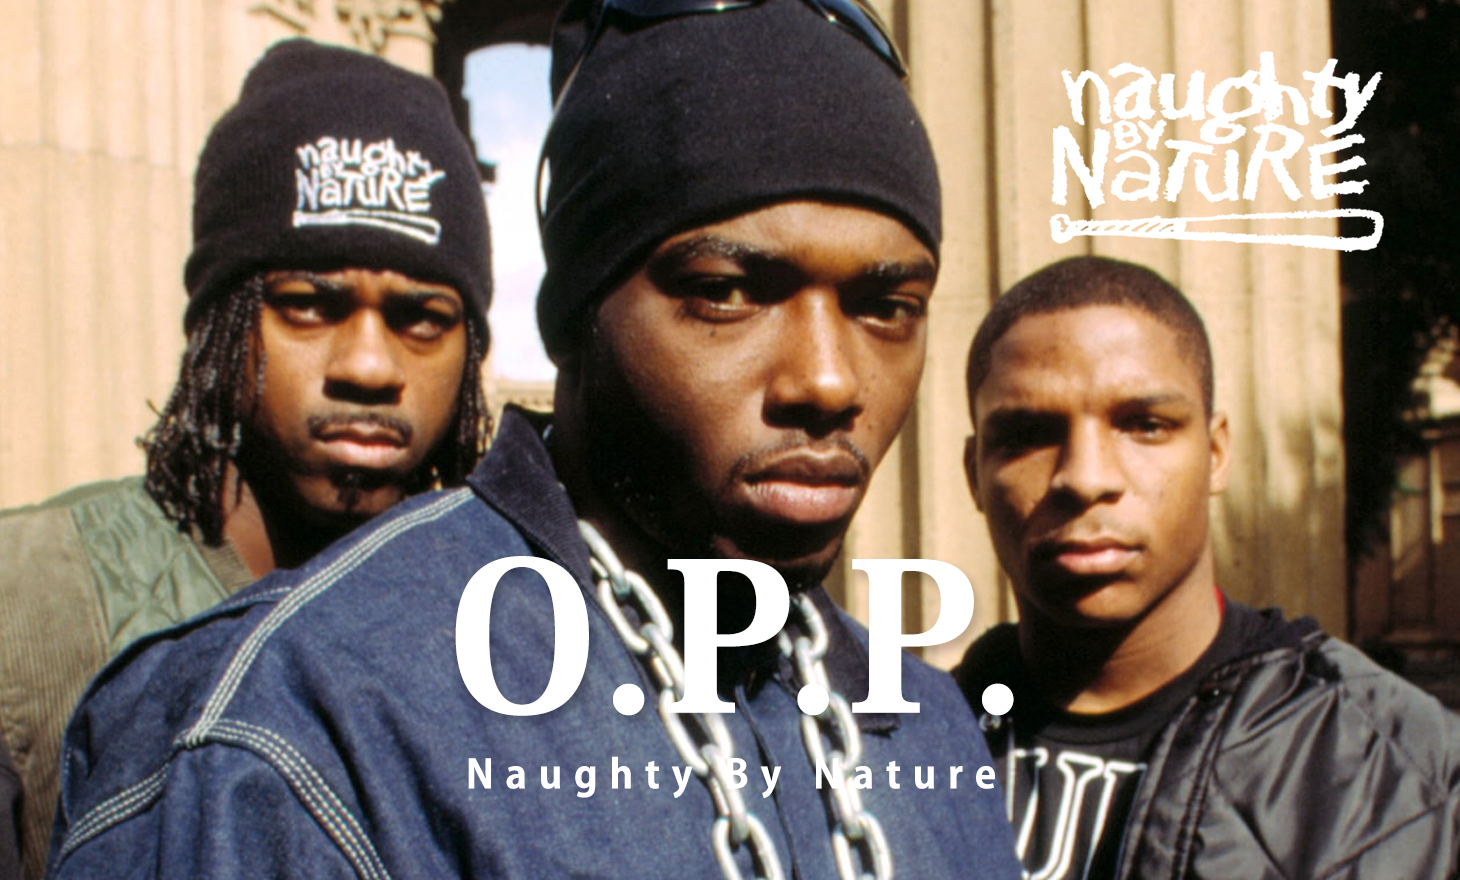 Naughty By Nature(ノーティーバイネイチャー):O.P.P.